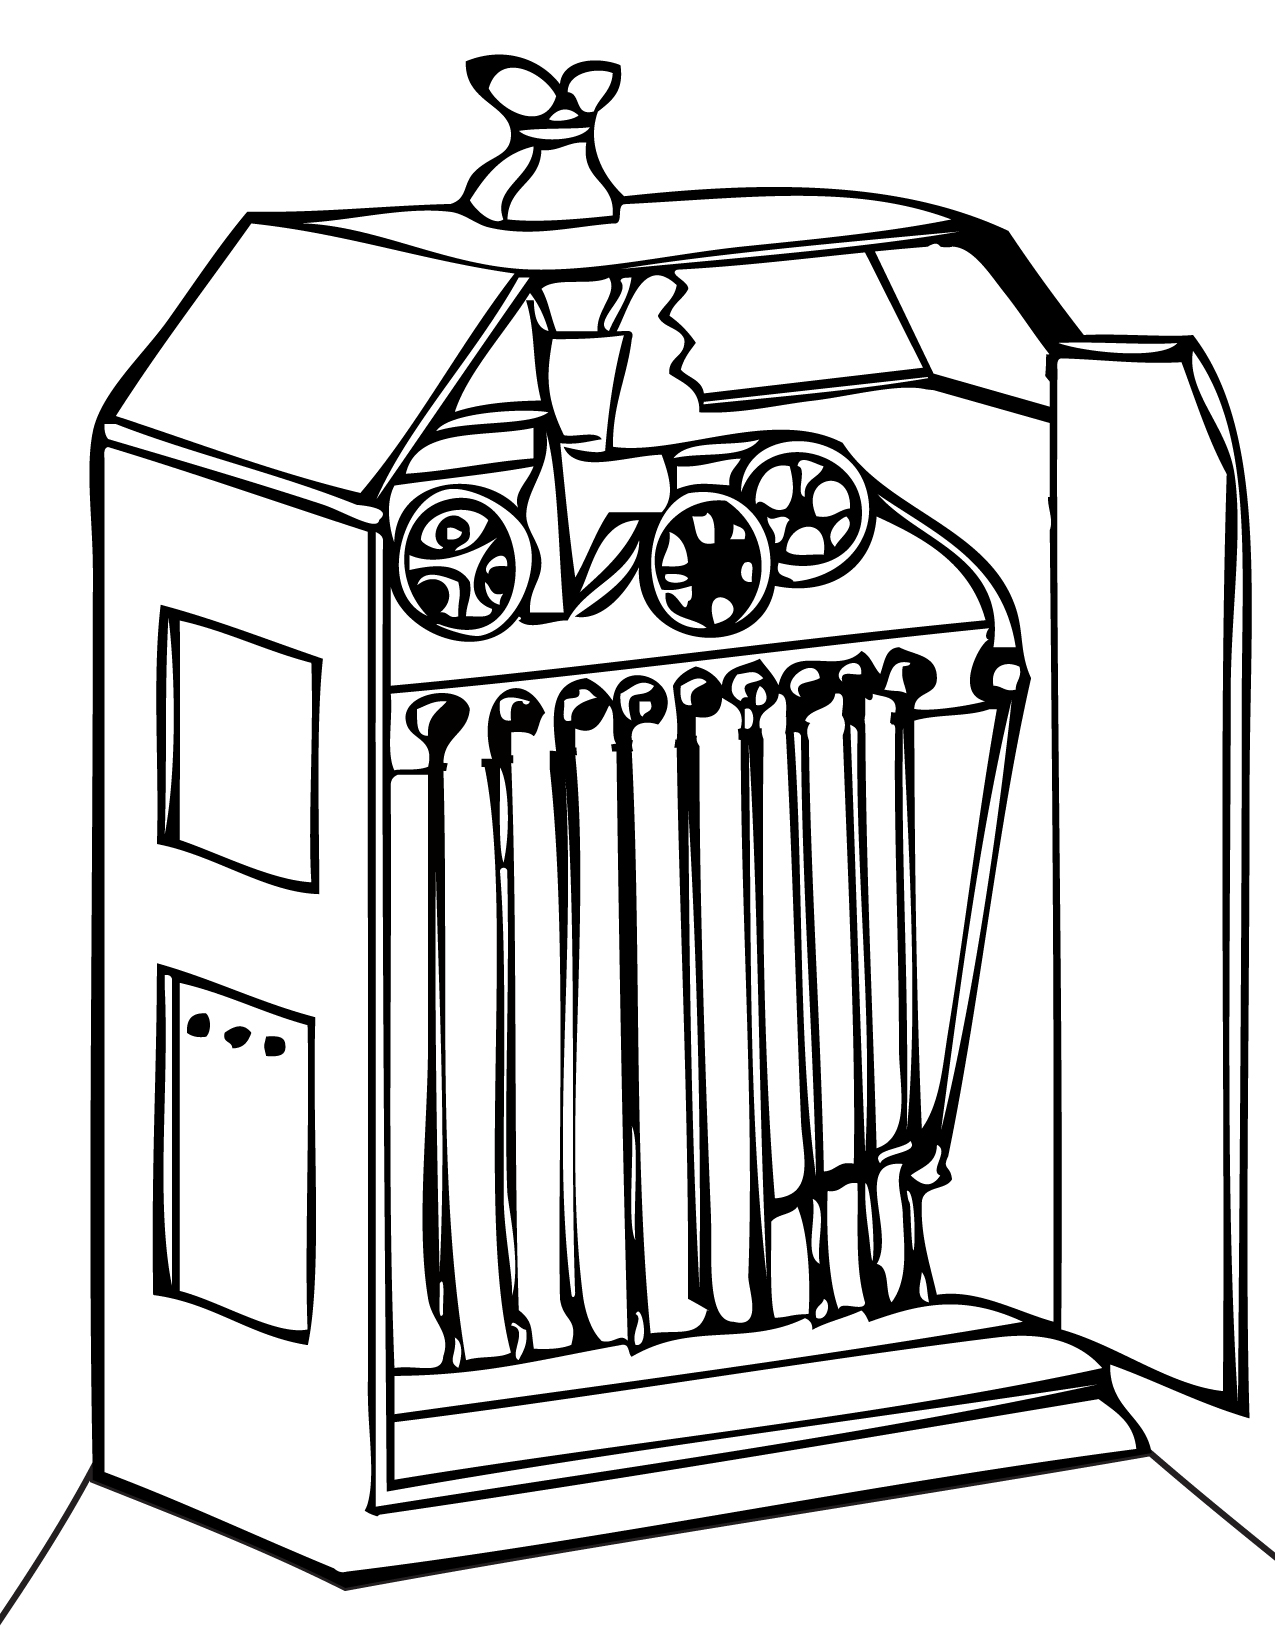 kinetoscope coloring page handipoints